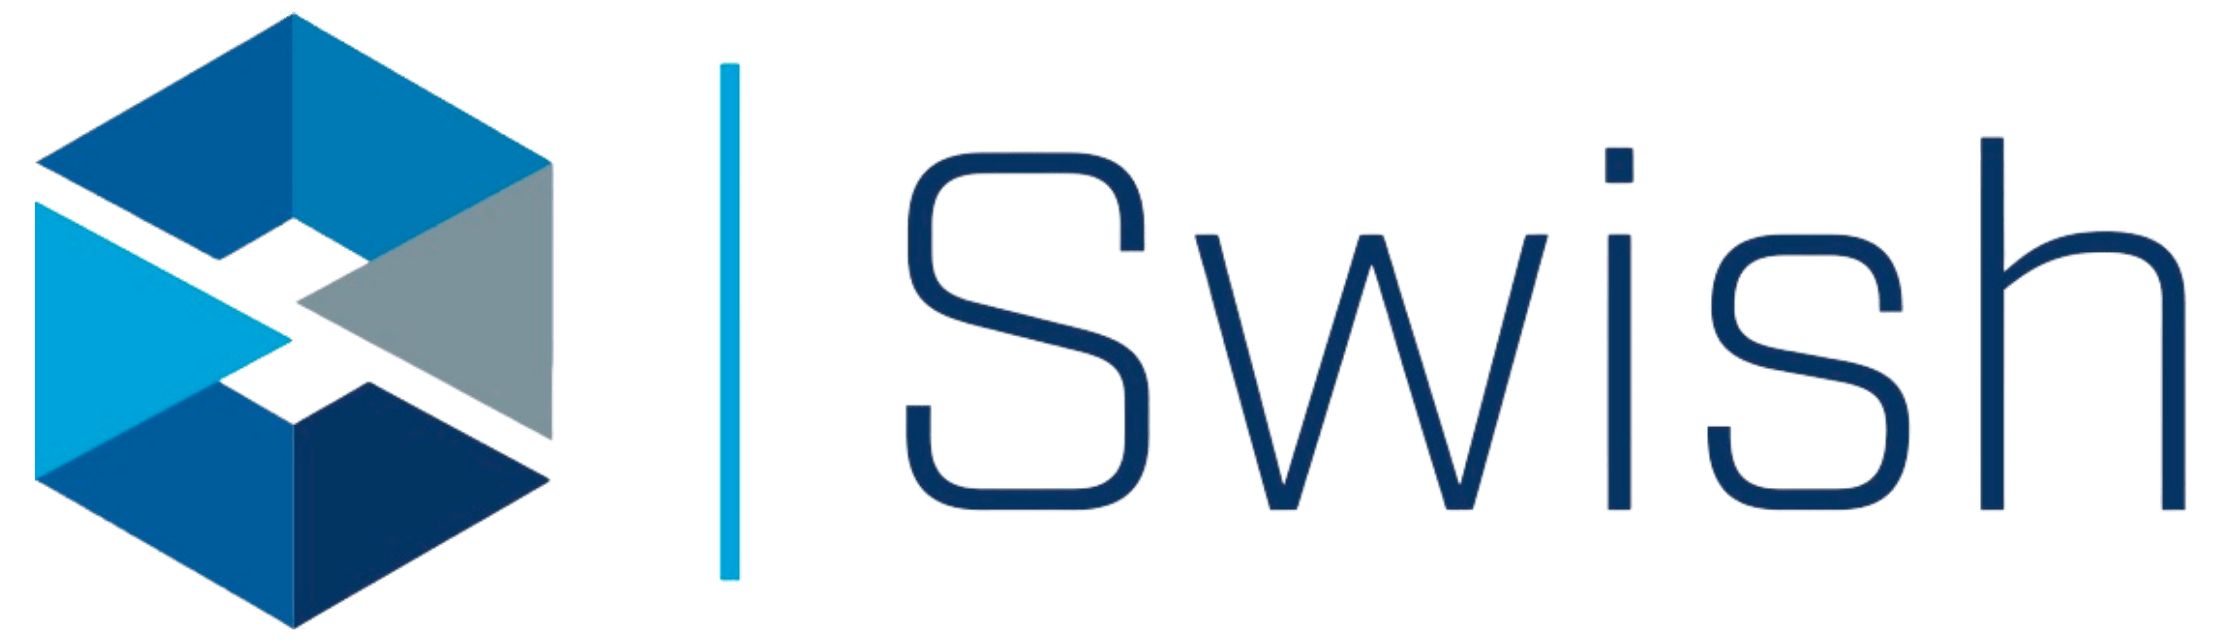 Swish Supports Continuous Learning, Social Interaction and Career Development for Northern Virginia DevSecOps Professionals